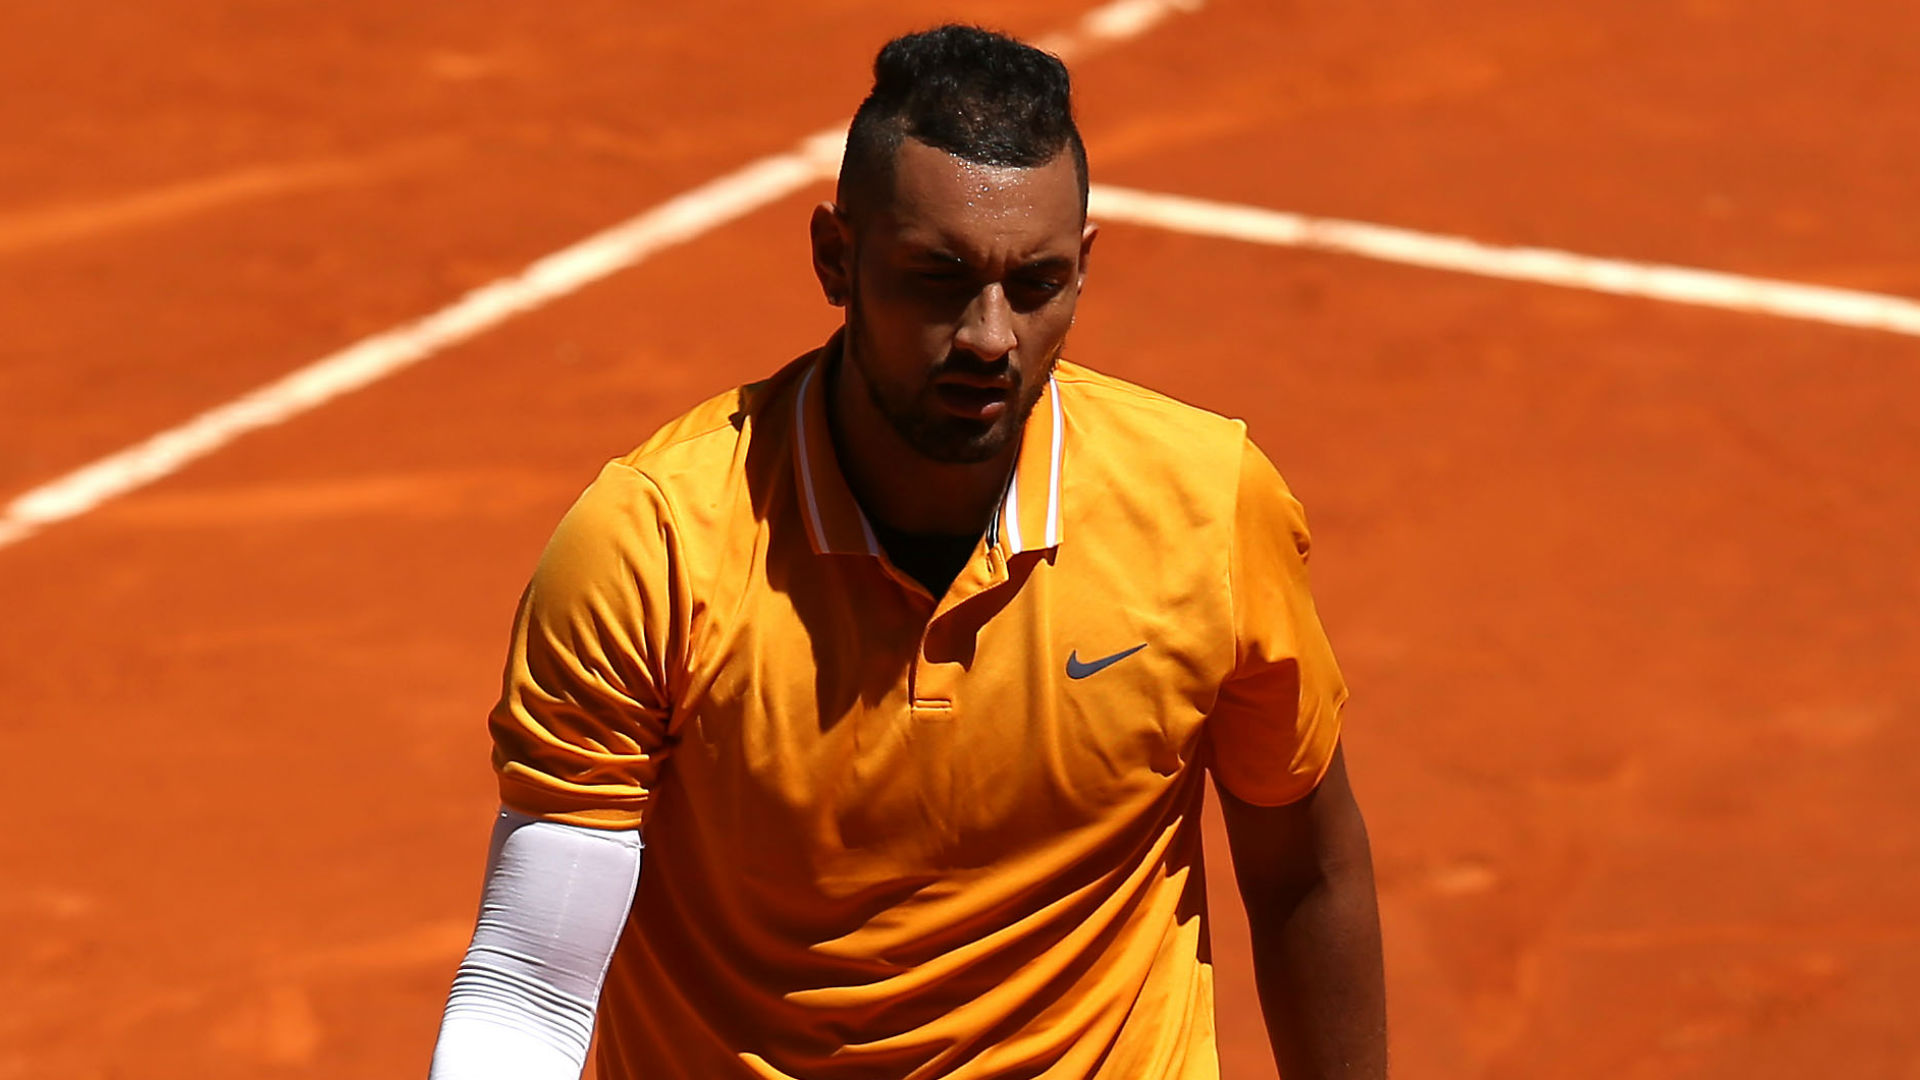 After becoming frustrated with the umpire, Nick Kyrgios responded to a game penalty by throwing a table before walking off court.